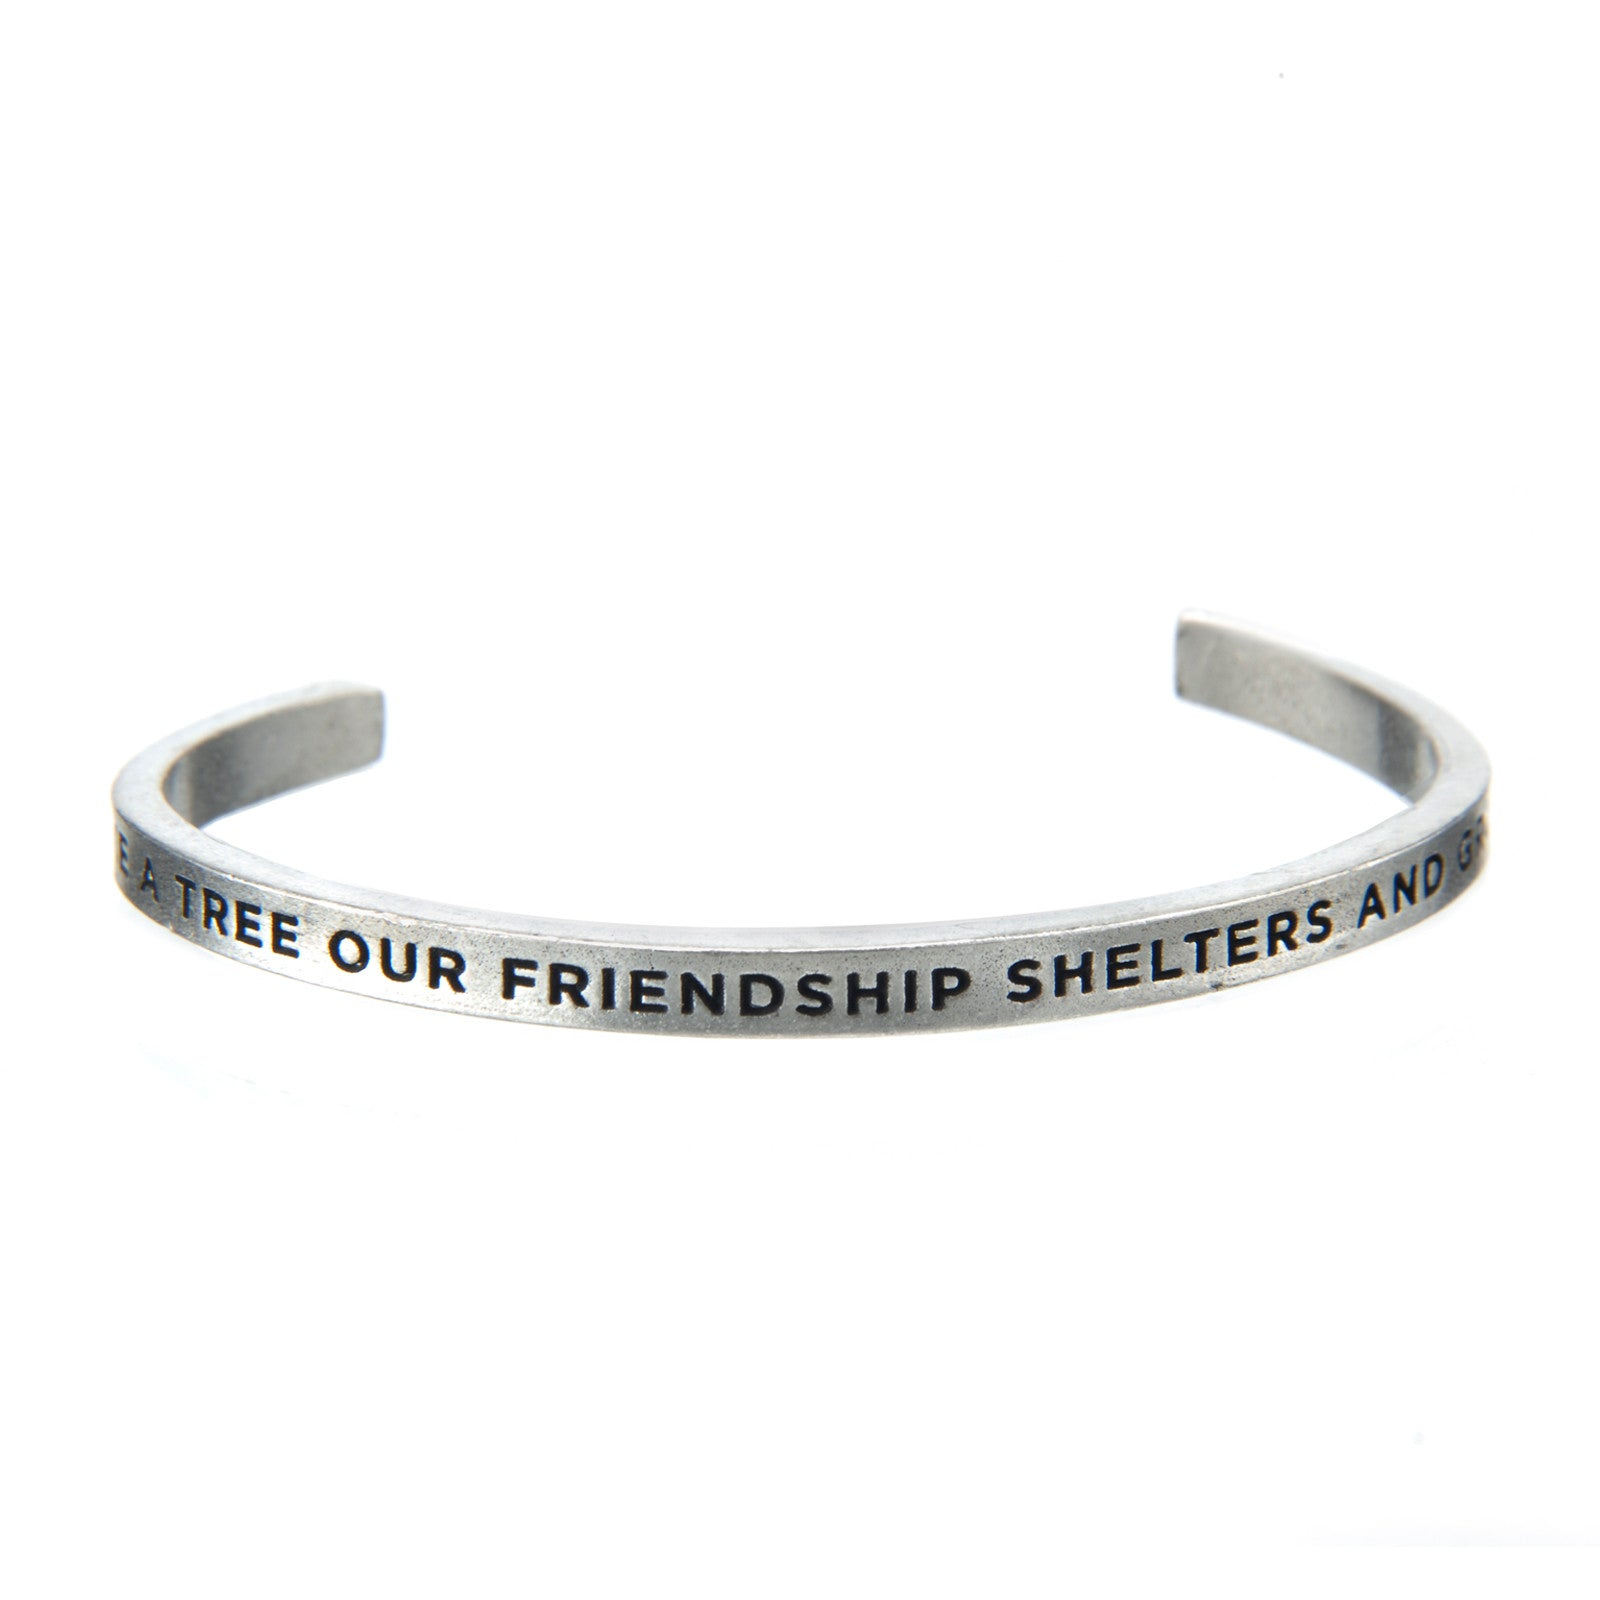 Our Friendship Grows Quotable Cuff Bracelet - Whitney Howard Designs